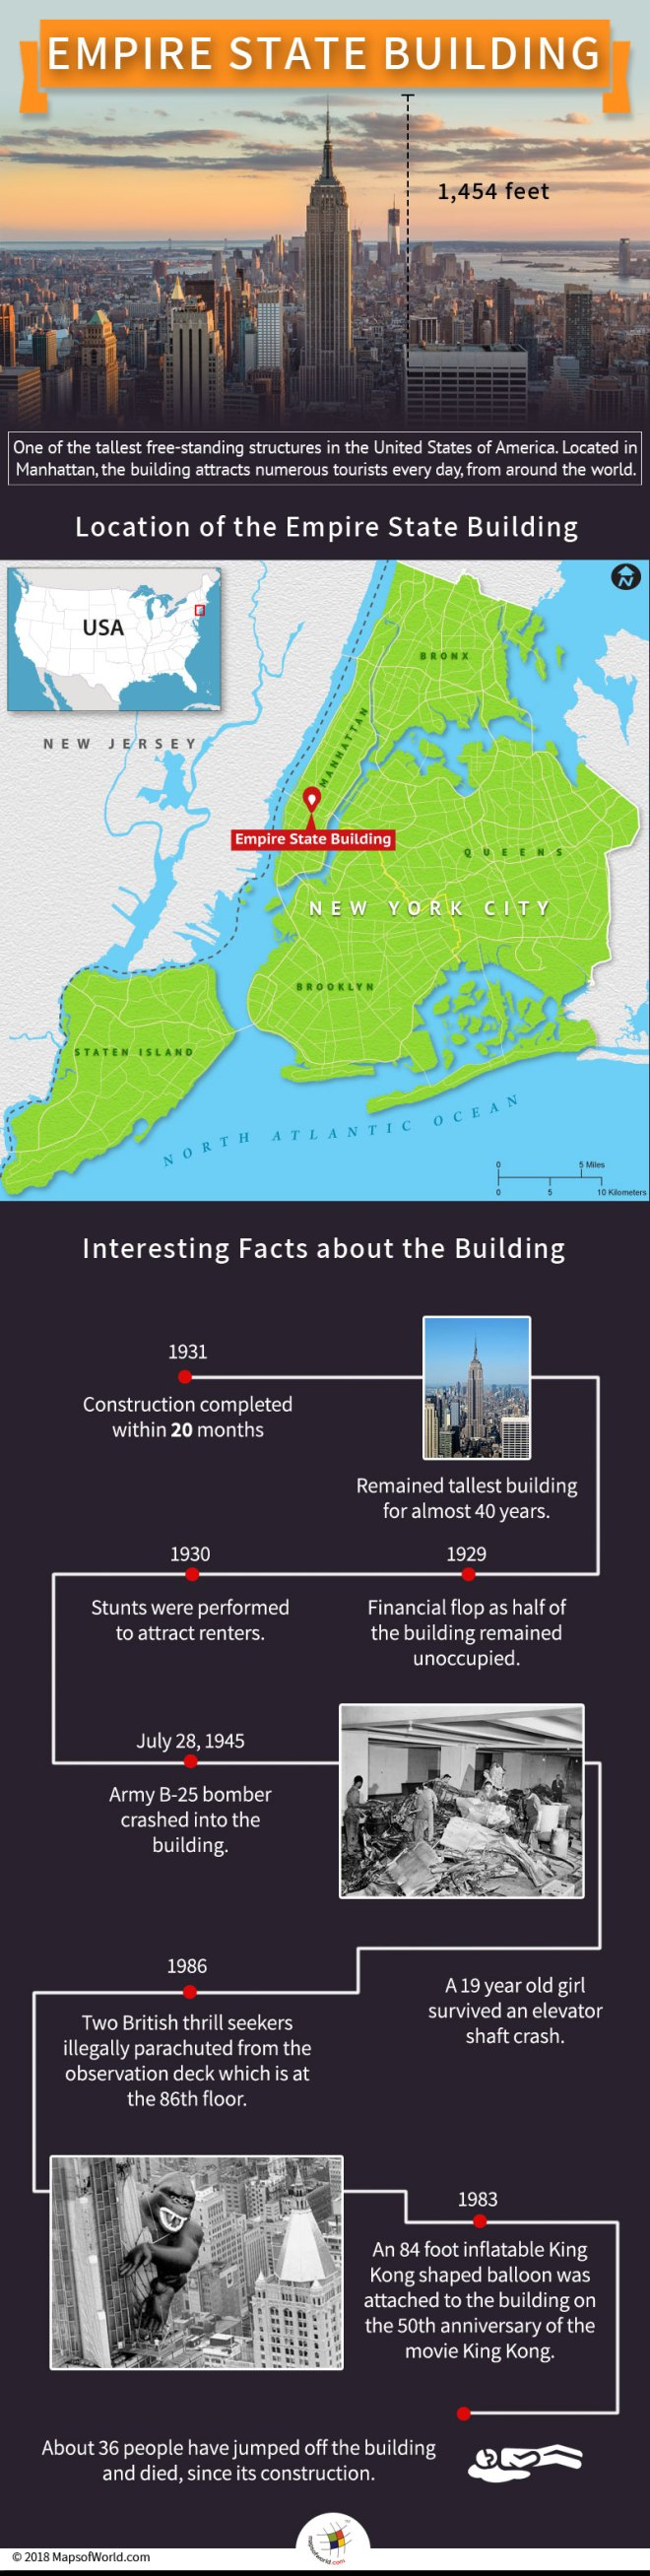 Empire State Building is The Tallest Freestanding Structure in USA